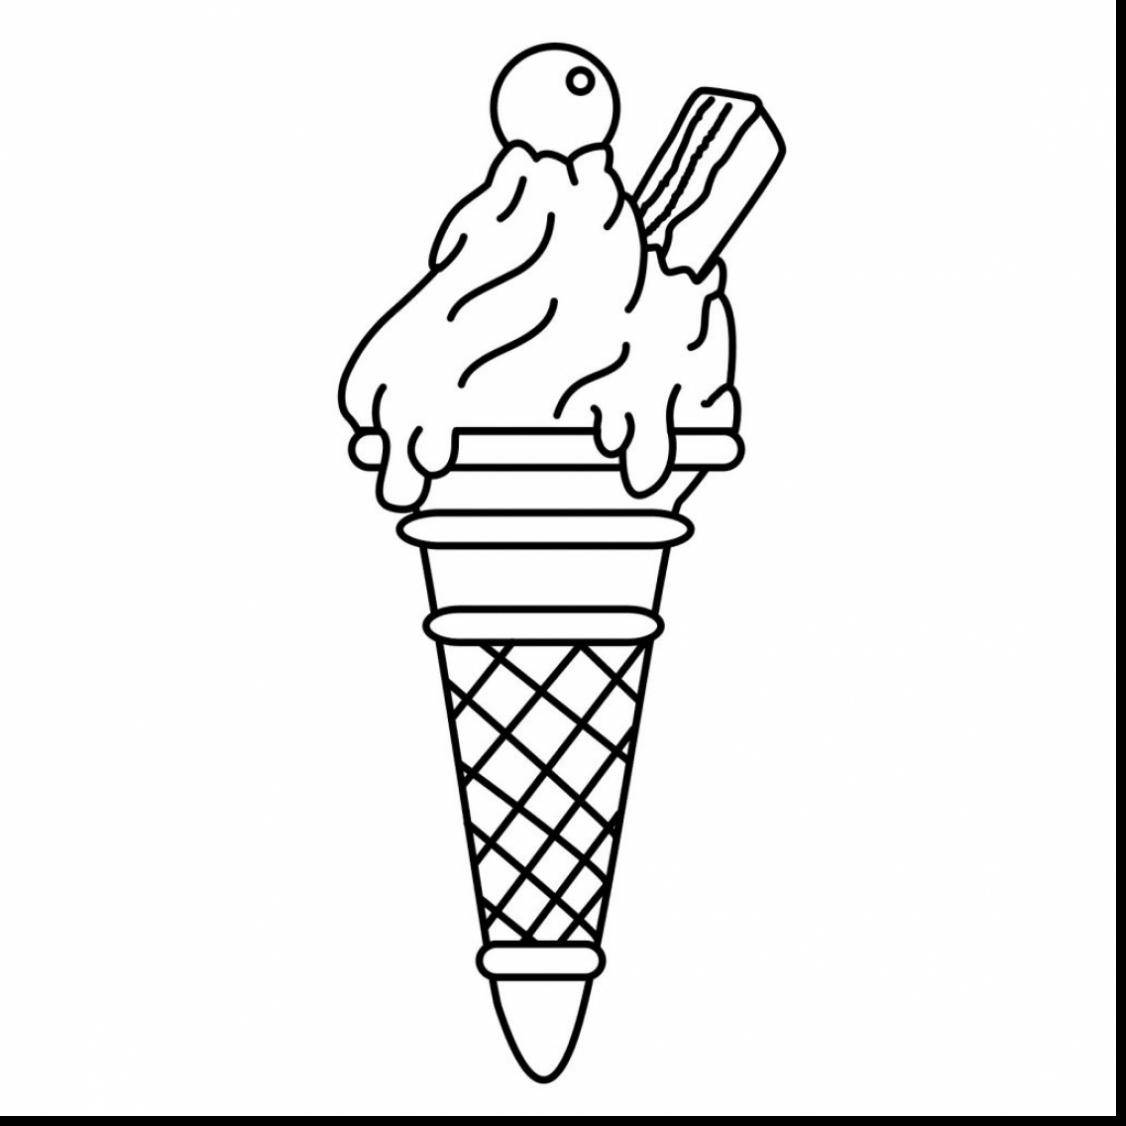 1126x1126 Brilliant Ice Cream Cone Clip Art Black And White With Ice Cream